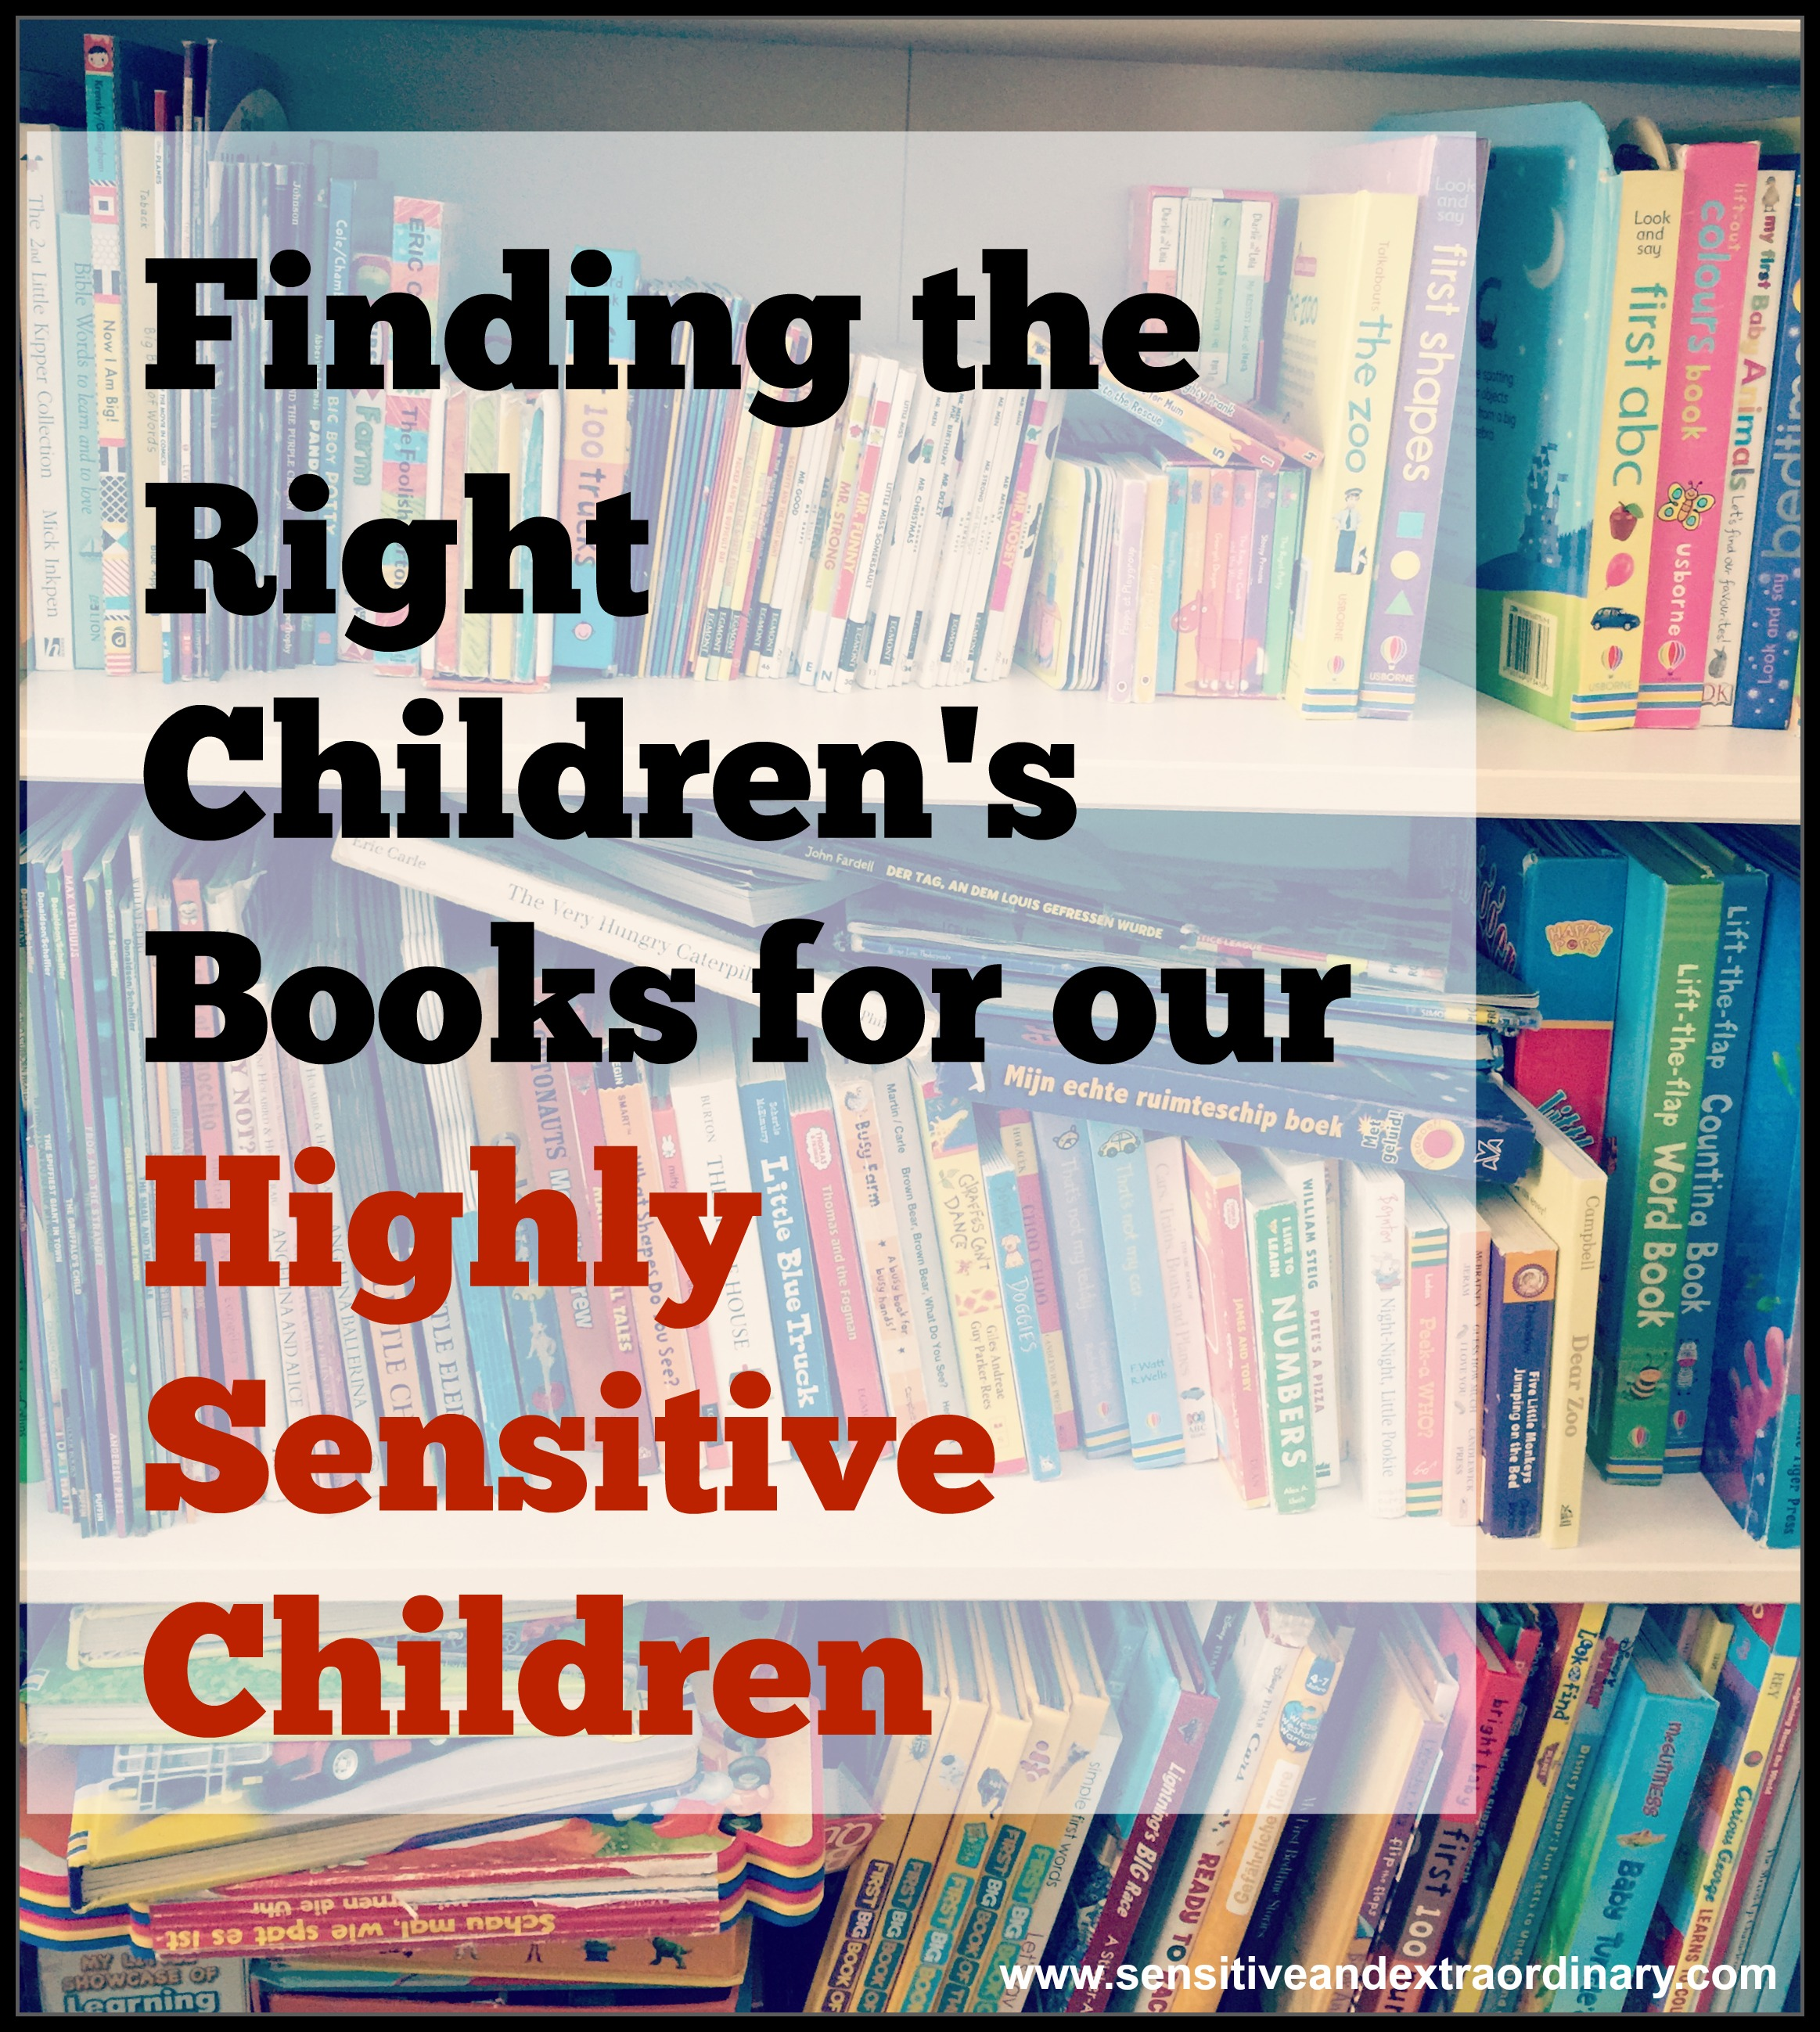 highly sensitive child, HSC, highly sensitive person, HSP, children, parenting, children's books, picture books, stories, plot, worry, anxiety, over analyze, asking questions, bedtime, tears, fairy tales, library